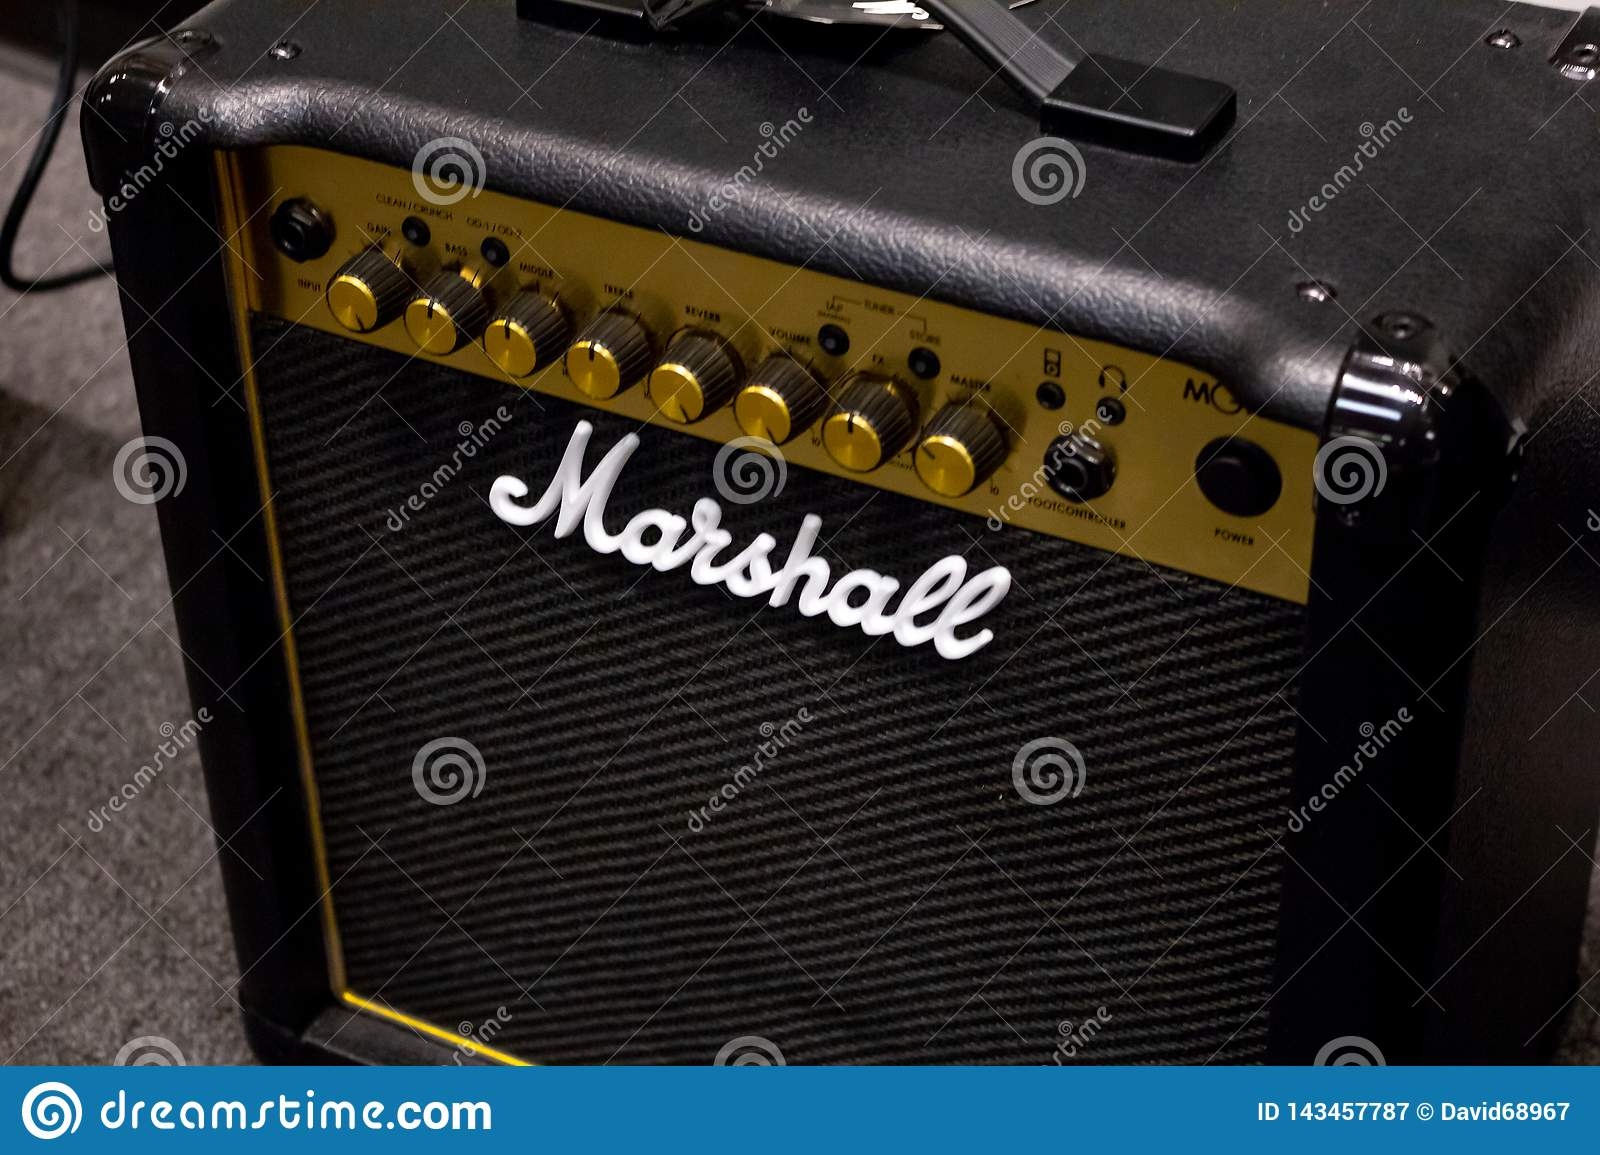 A Marshall brand amplifier